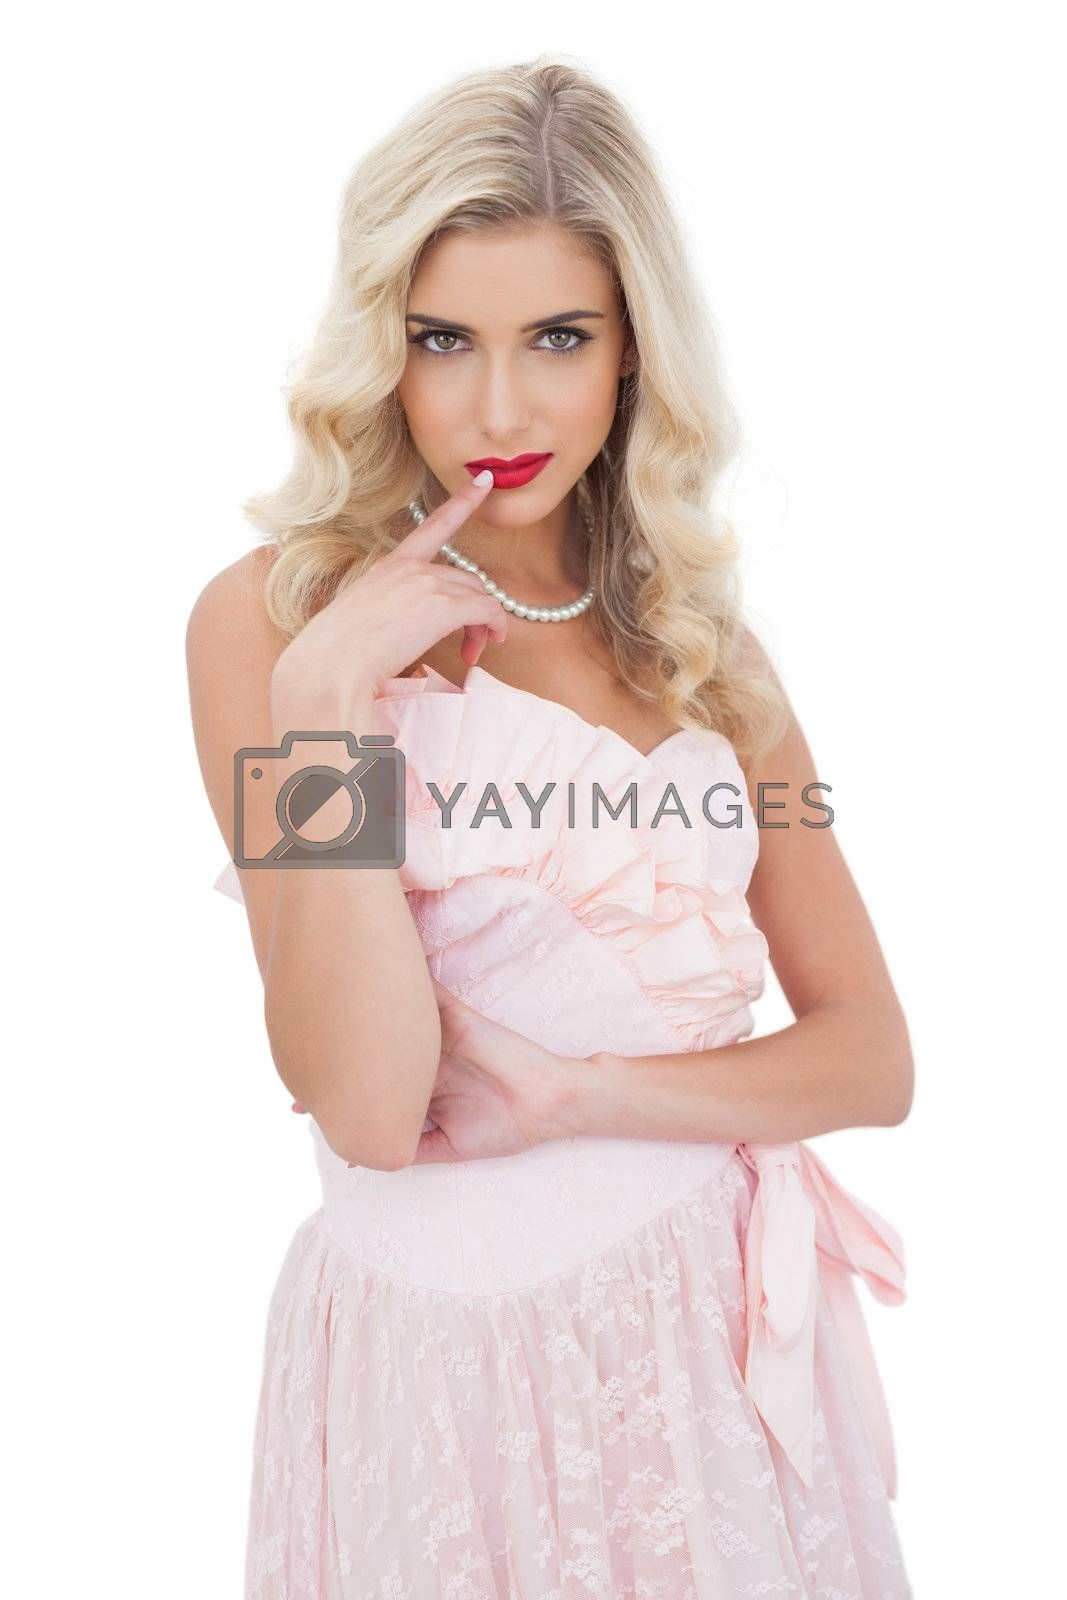 Amused blonde model in pink dress posing a finger on the mouth by Wavebreakmedia